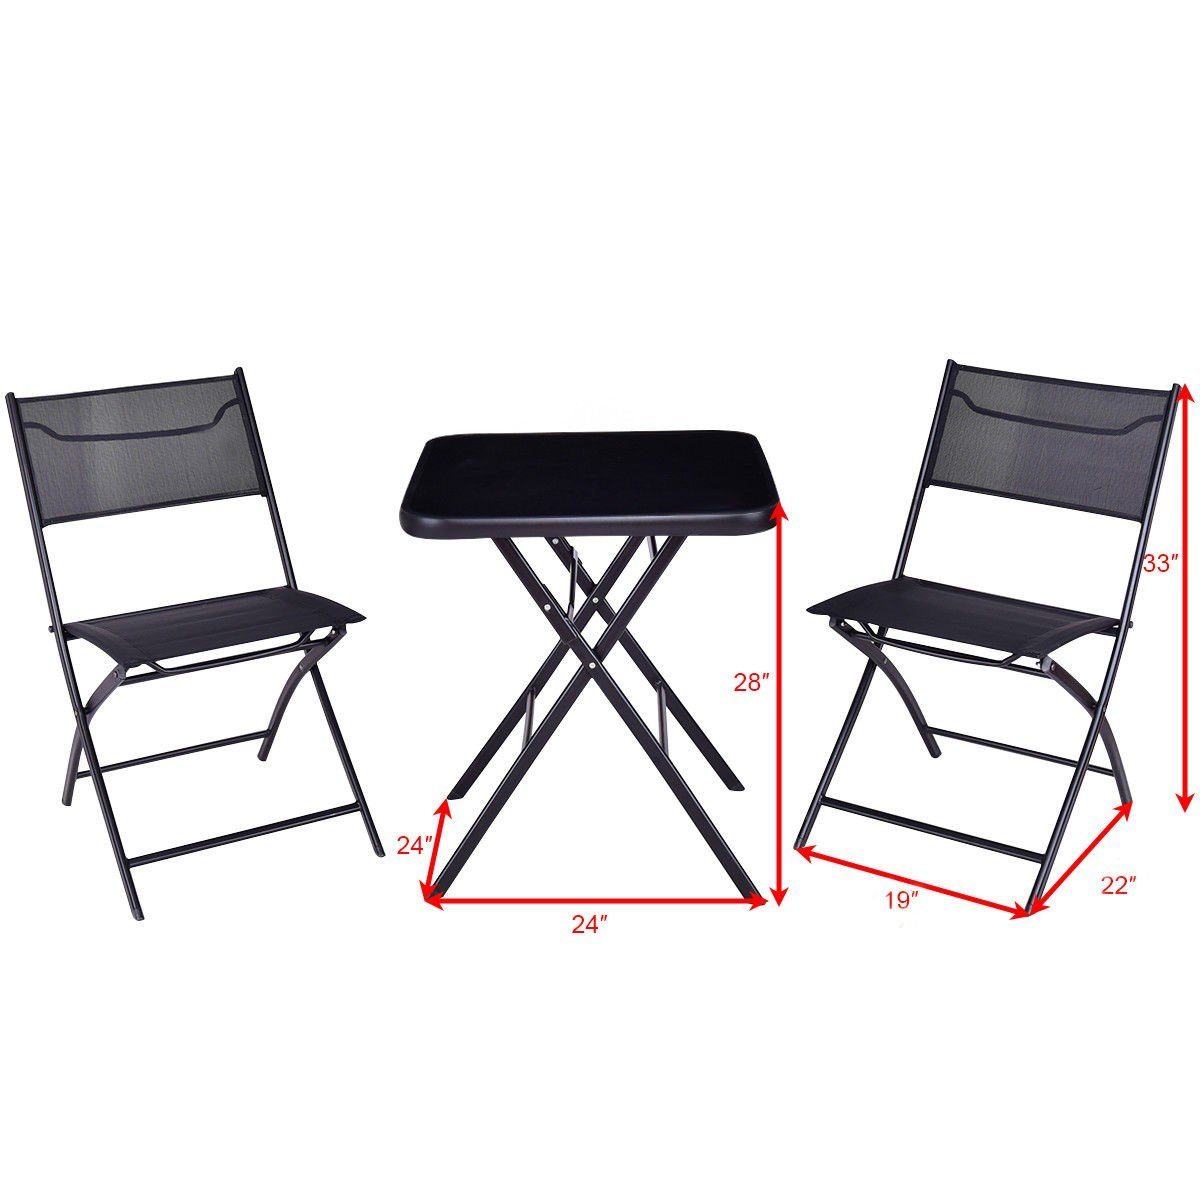 All4you Patio Bistro Table Set With Chairs Folding Outdoor Seater Coffee Table Set Black Backyard Balcony Furniture by All4you (Image #5)